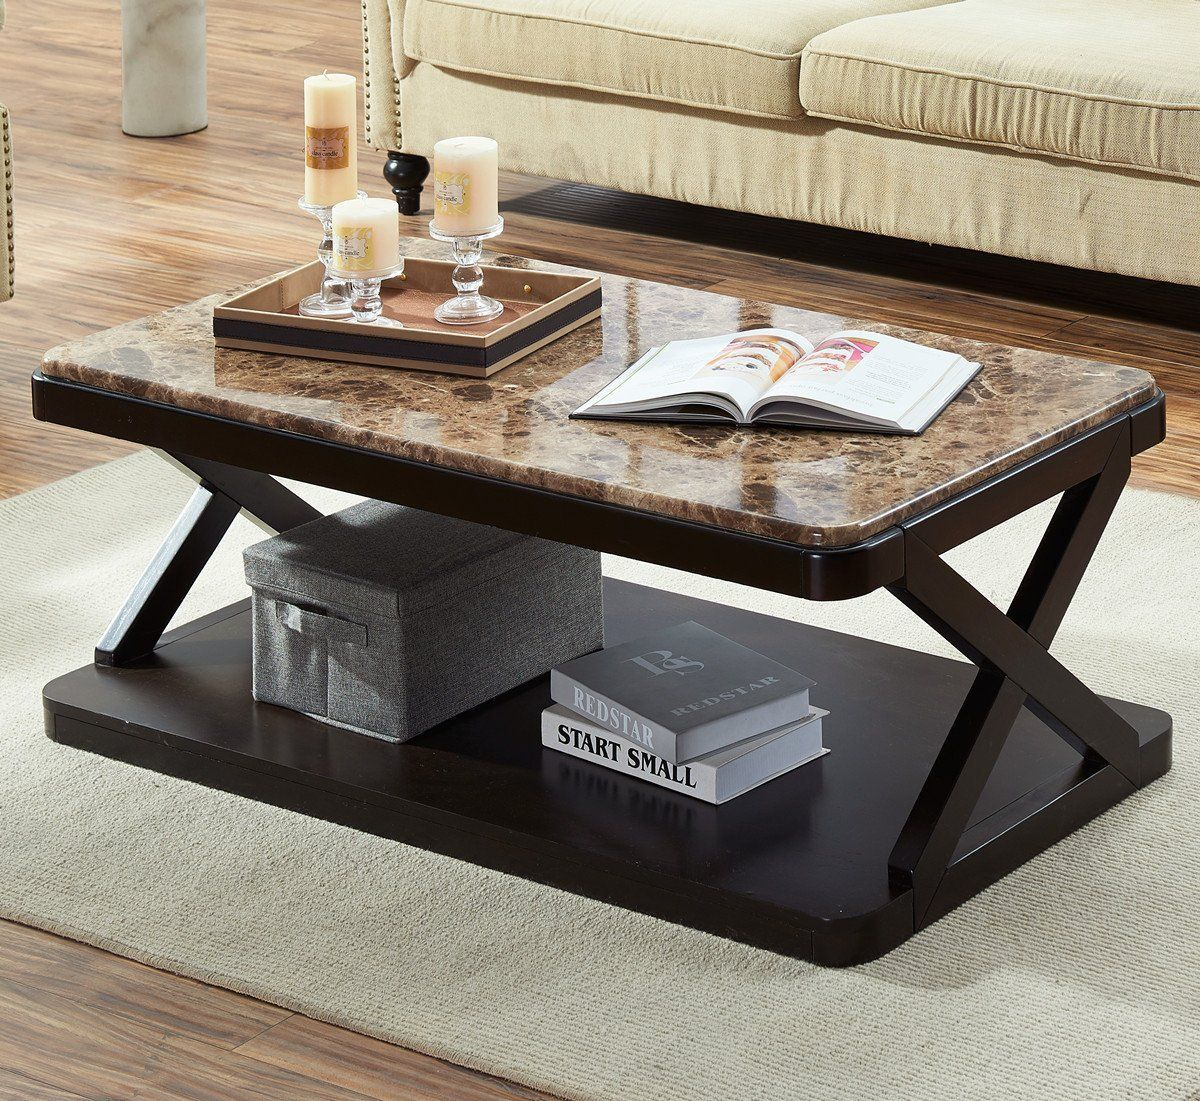 Pin By Khalida Mohammed On Furniture Marble Top Coffee Table Marble Coffee Table Set Coffee Table [ 1101 x 1200 Pixel ]